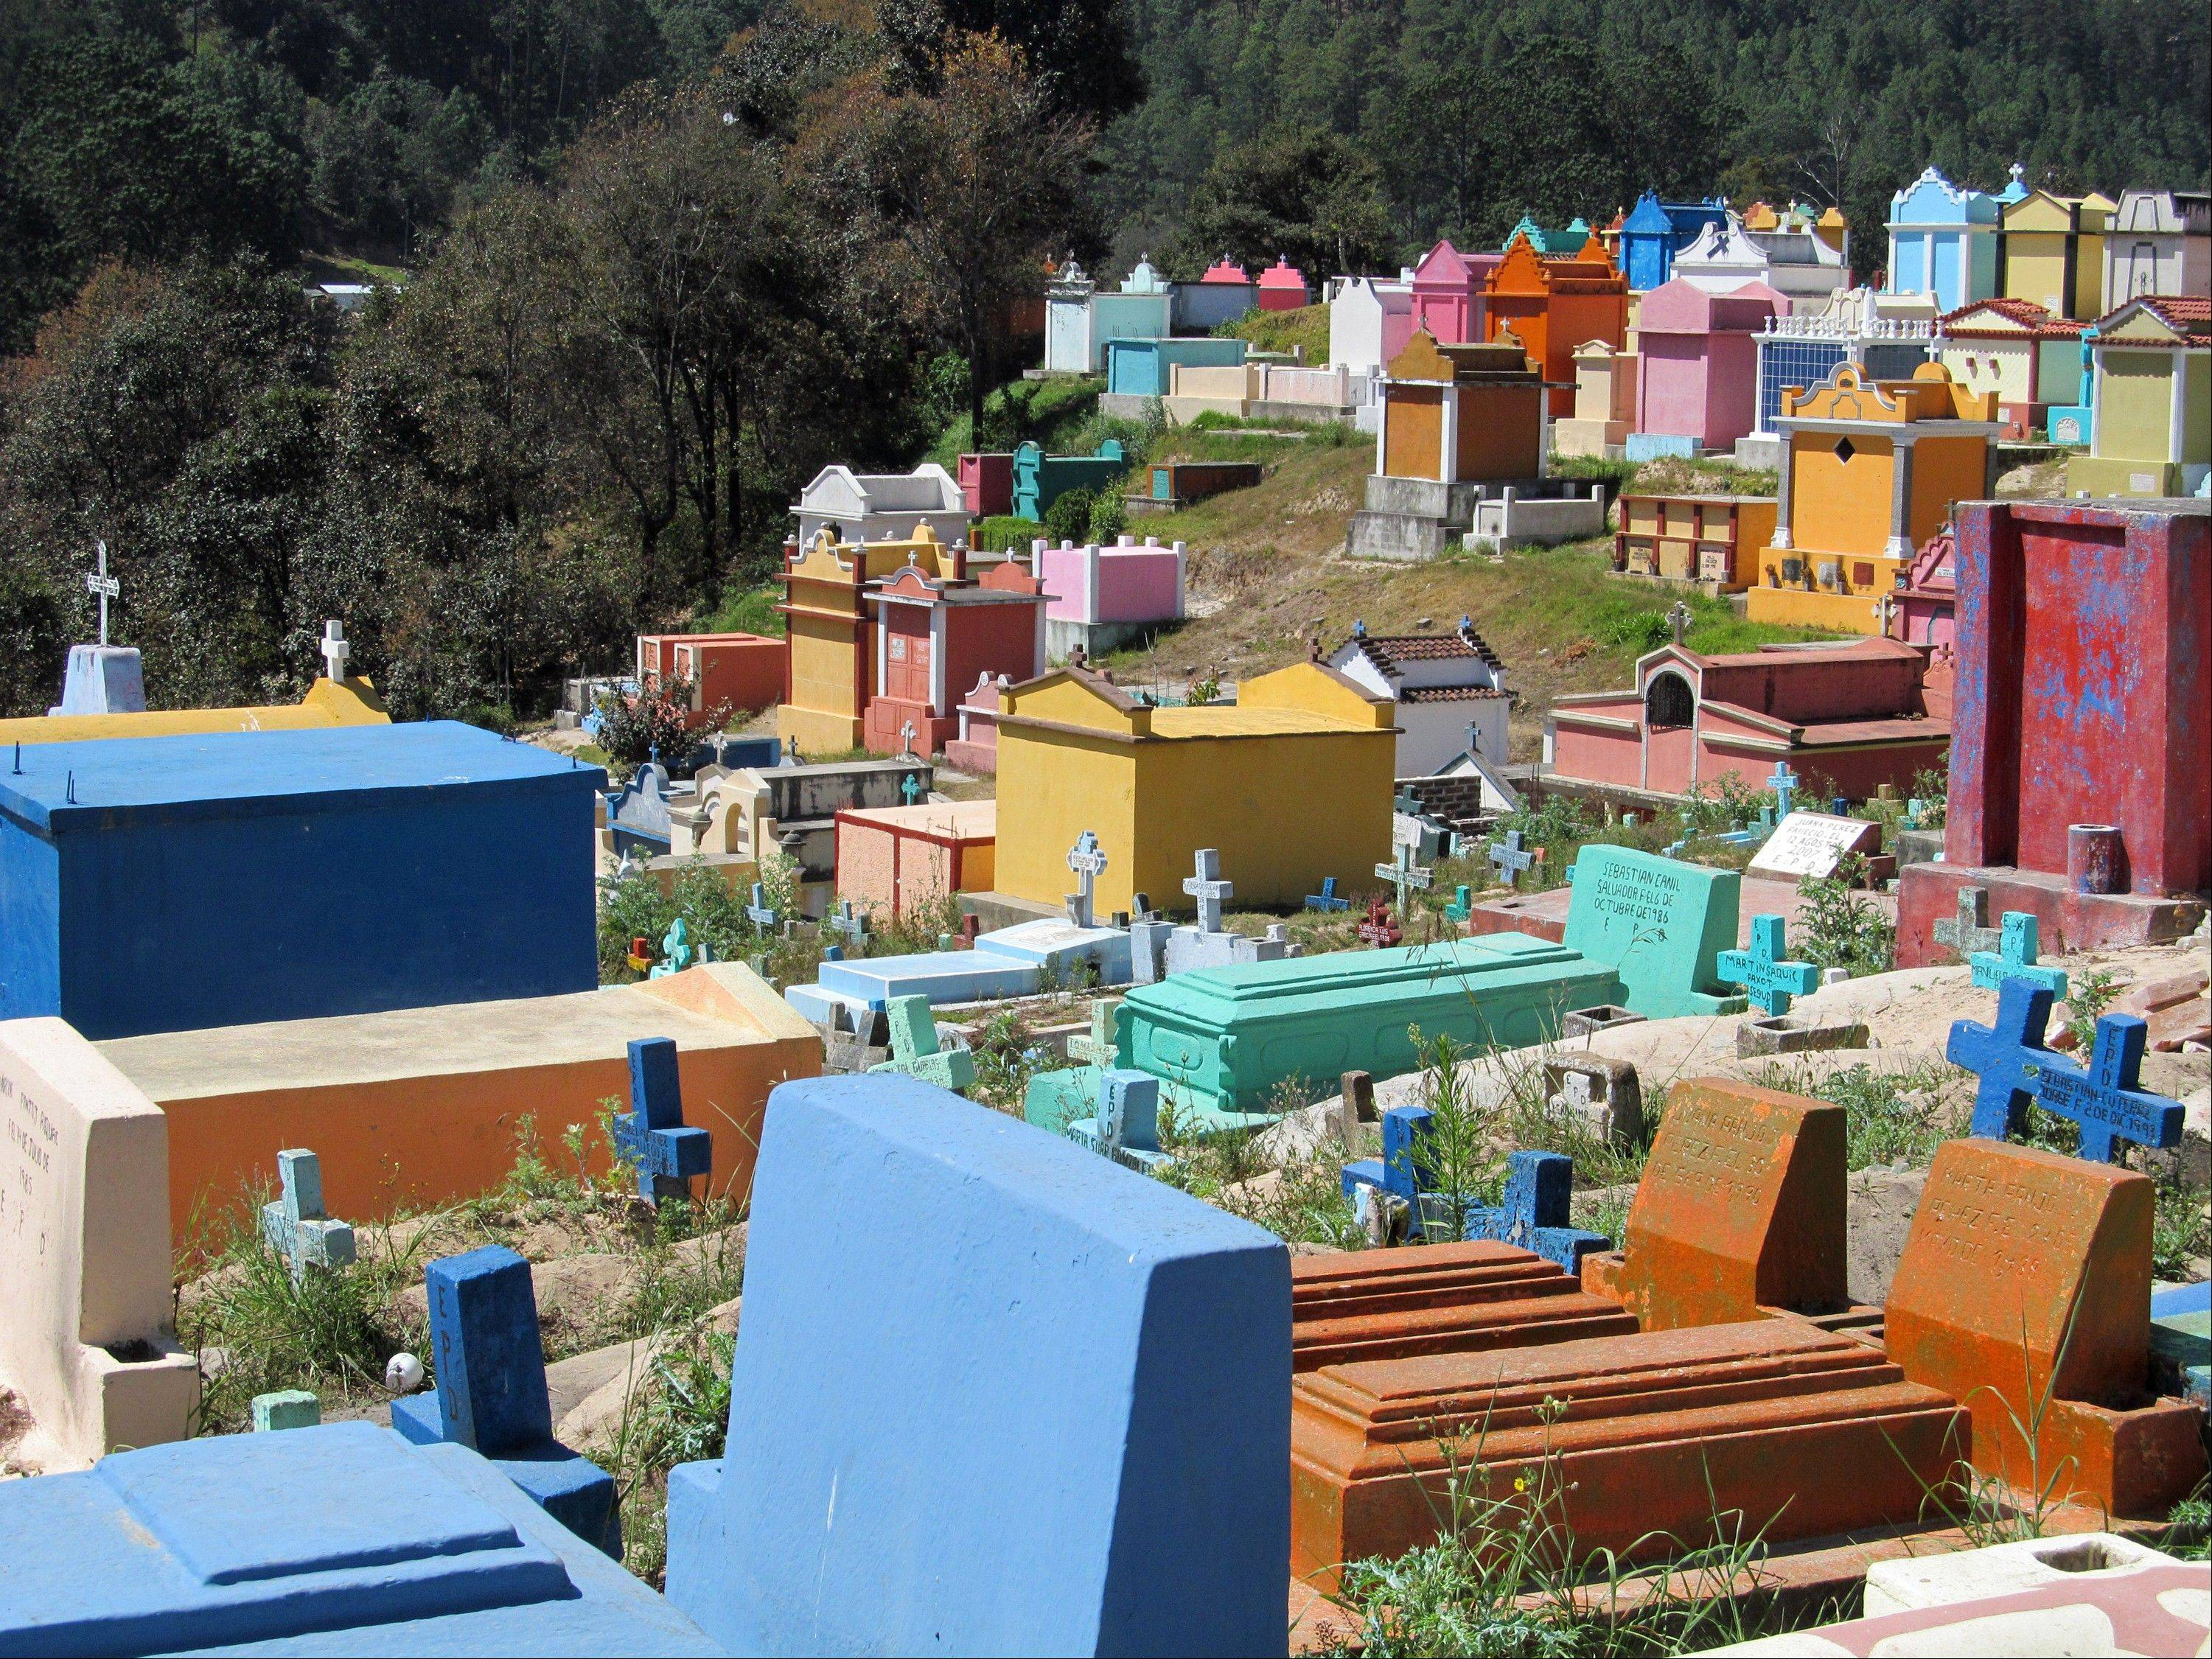 The colorful cemetery in Chichicastenango, Guatemala, where graves carry symbols of the Mayan and Catholic faiths.